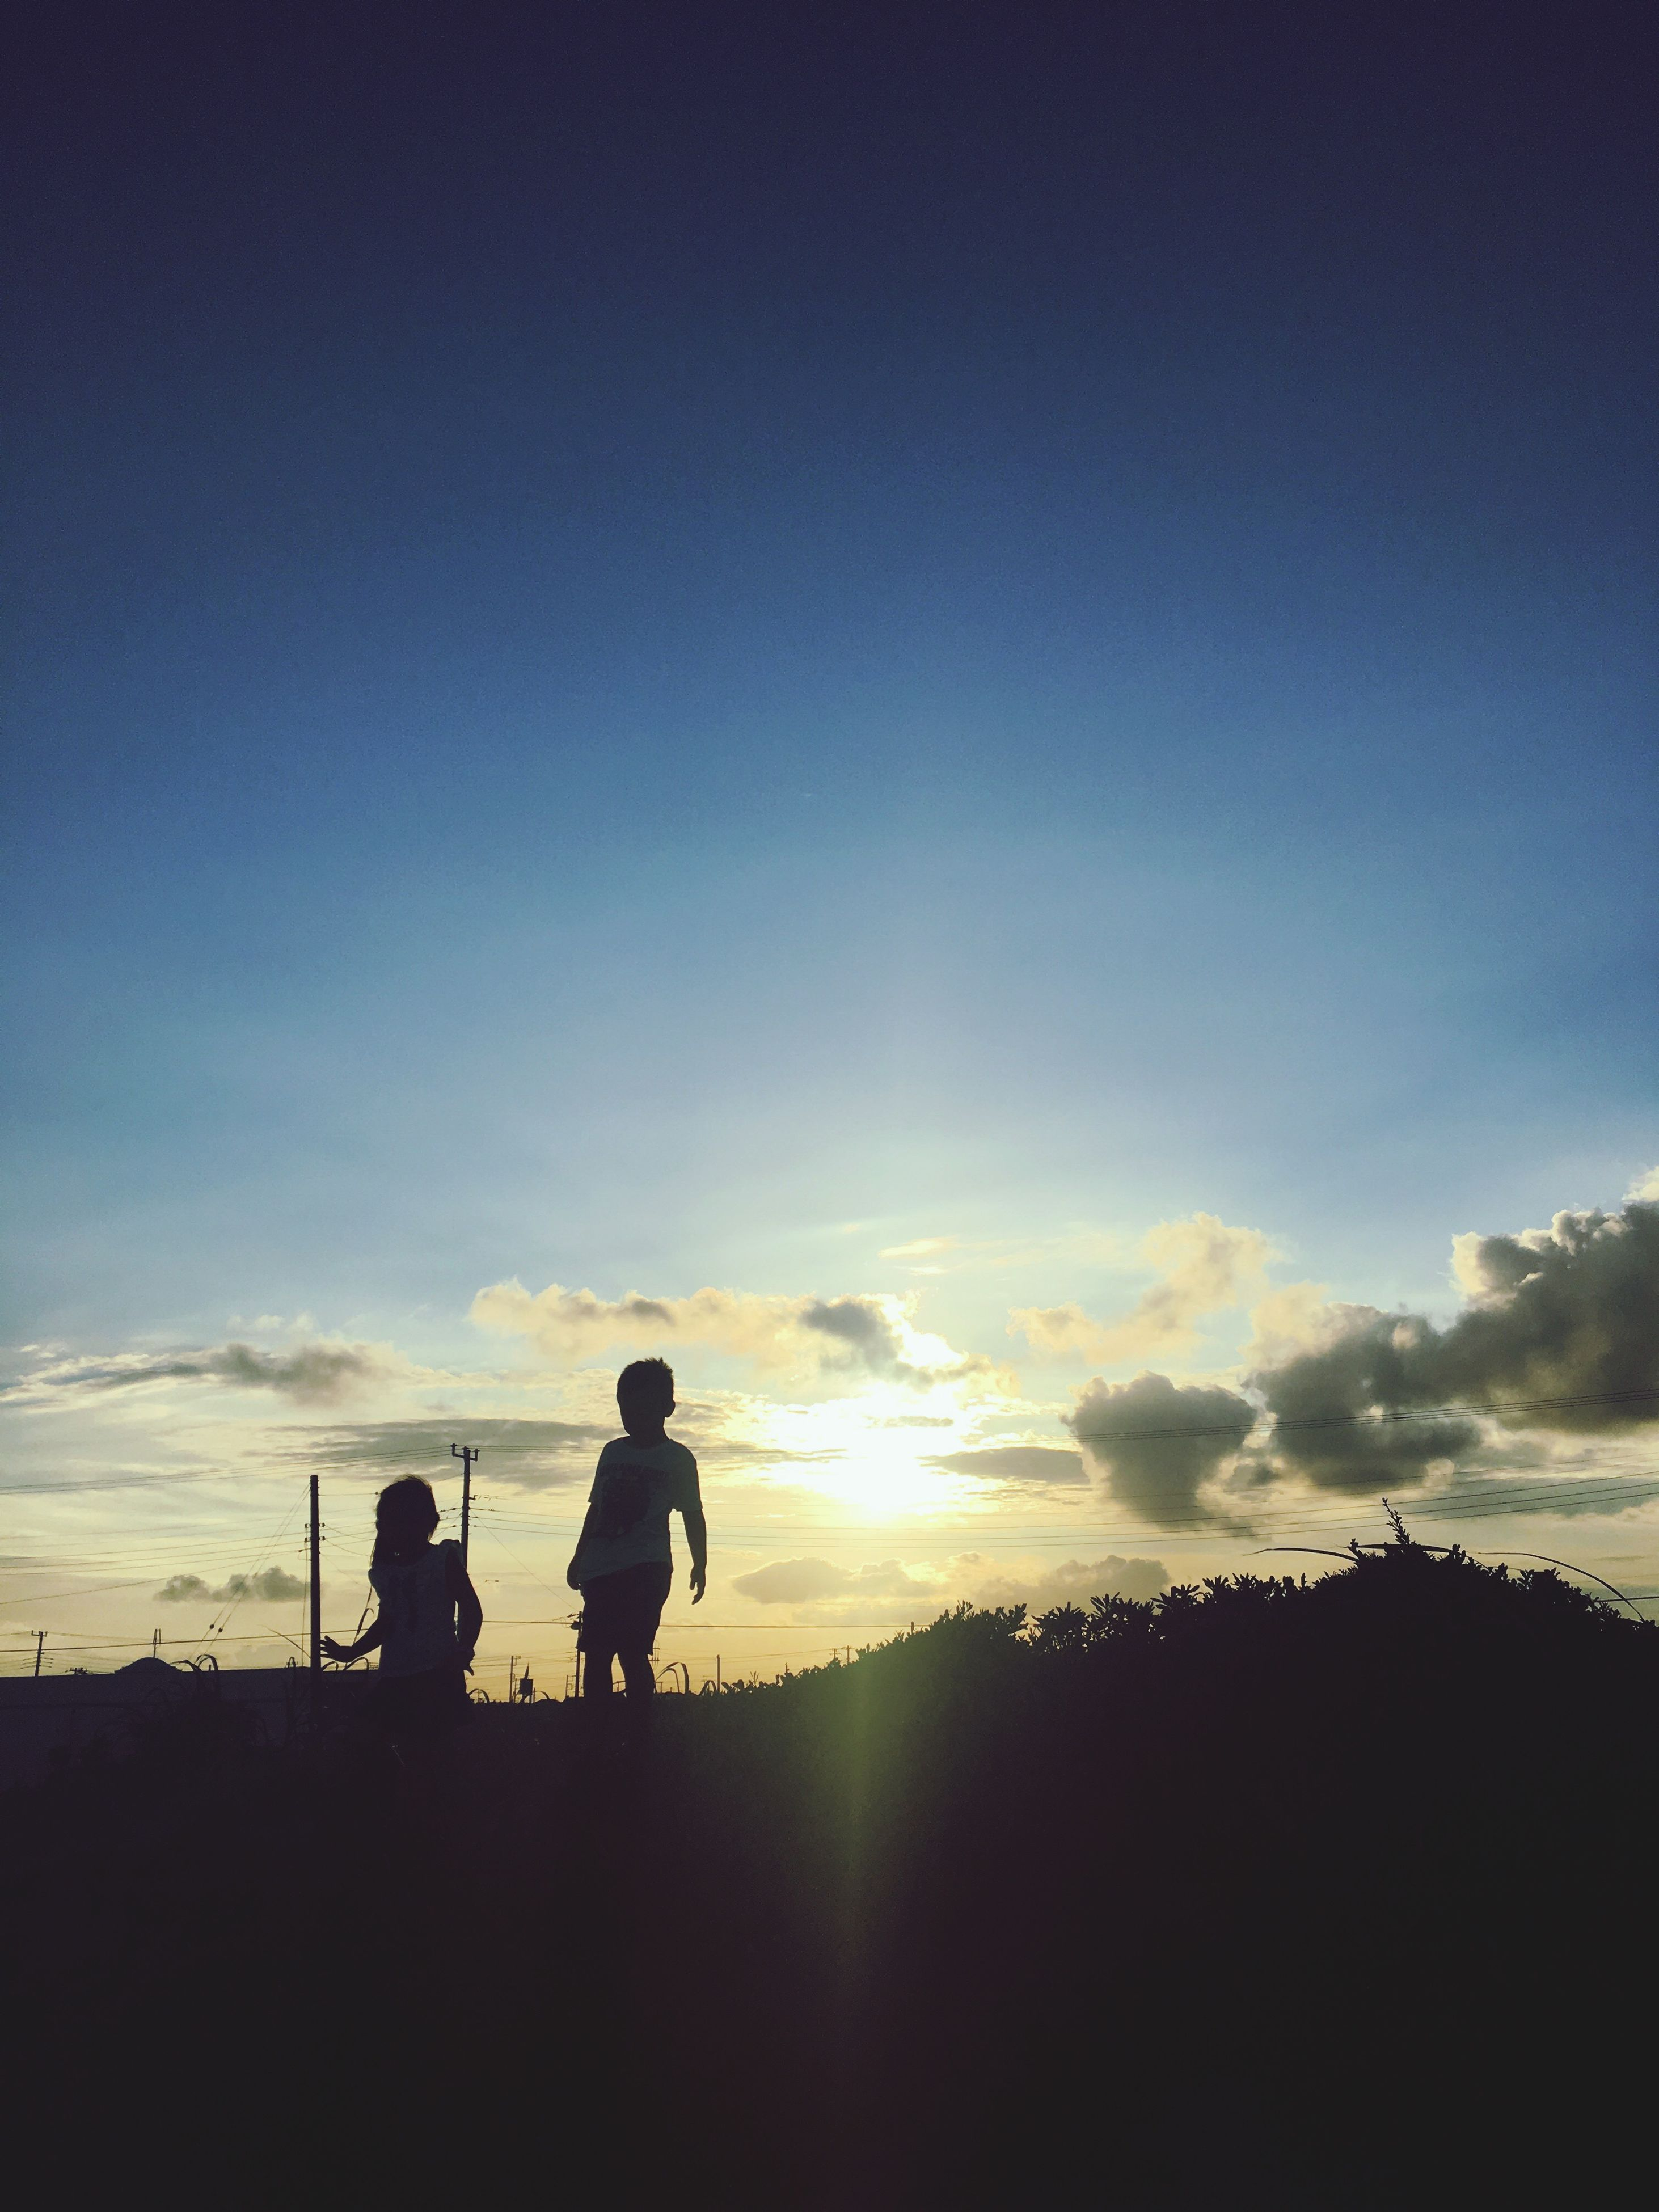 silhouette, sunset, lifestyles, sky, leisure activity, tranquility, tranquil scene, beauty in nature, scenics, nature, idyllic, cloud - sky, outline, landscape, outdoors, cloud, vacations, non-urban scene, orange color